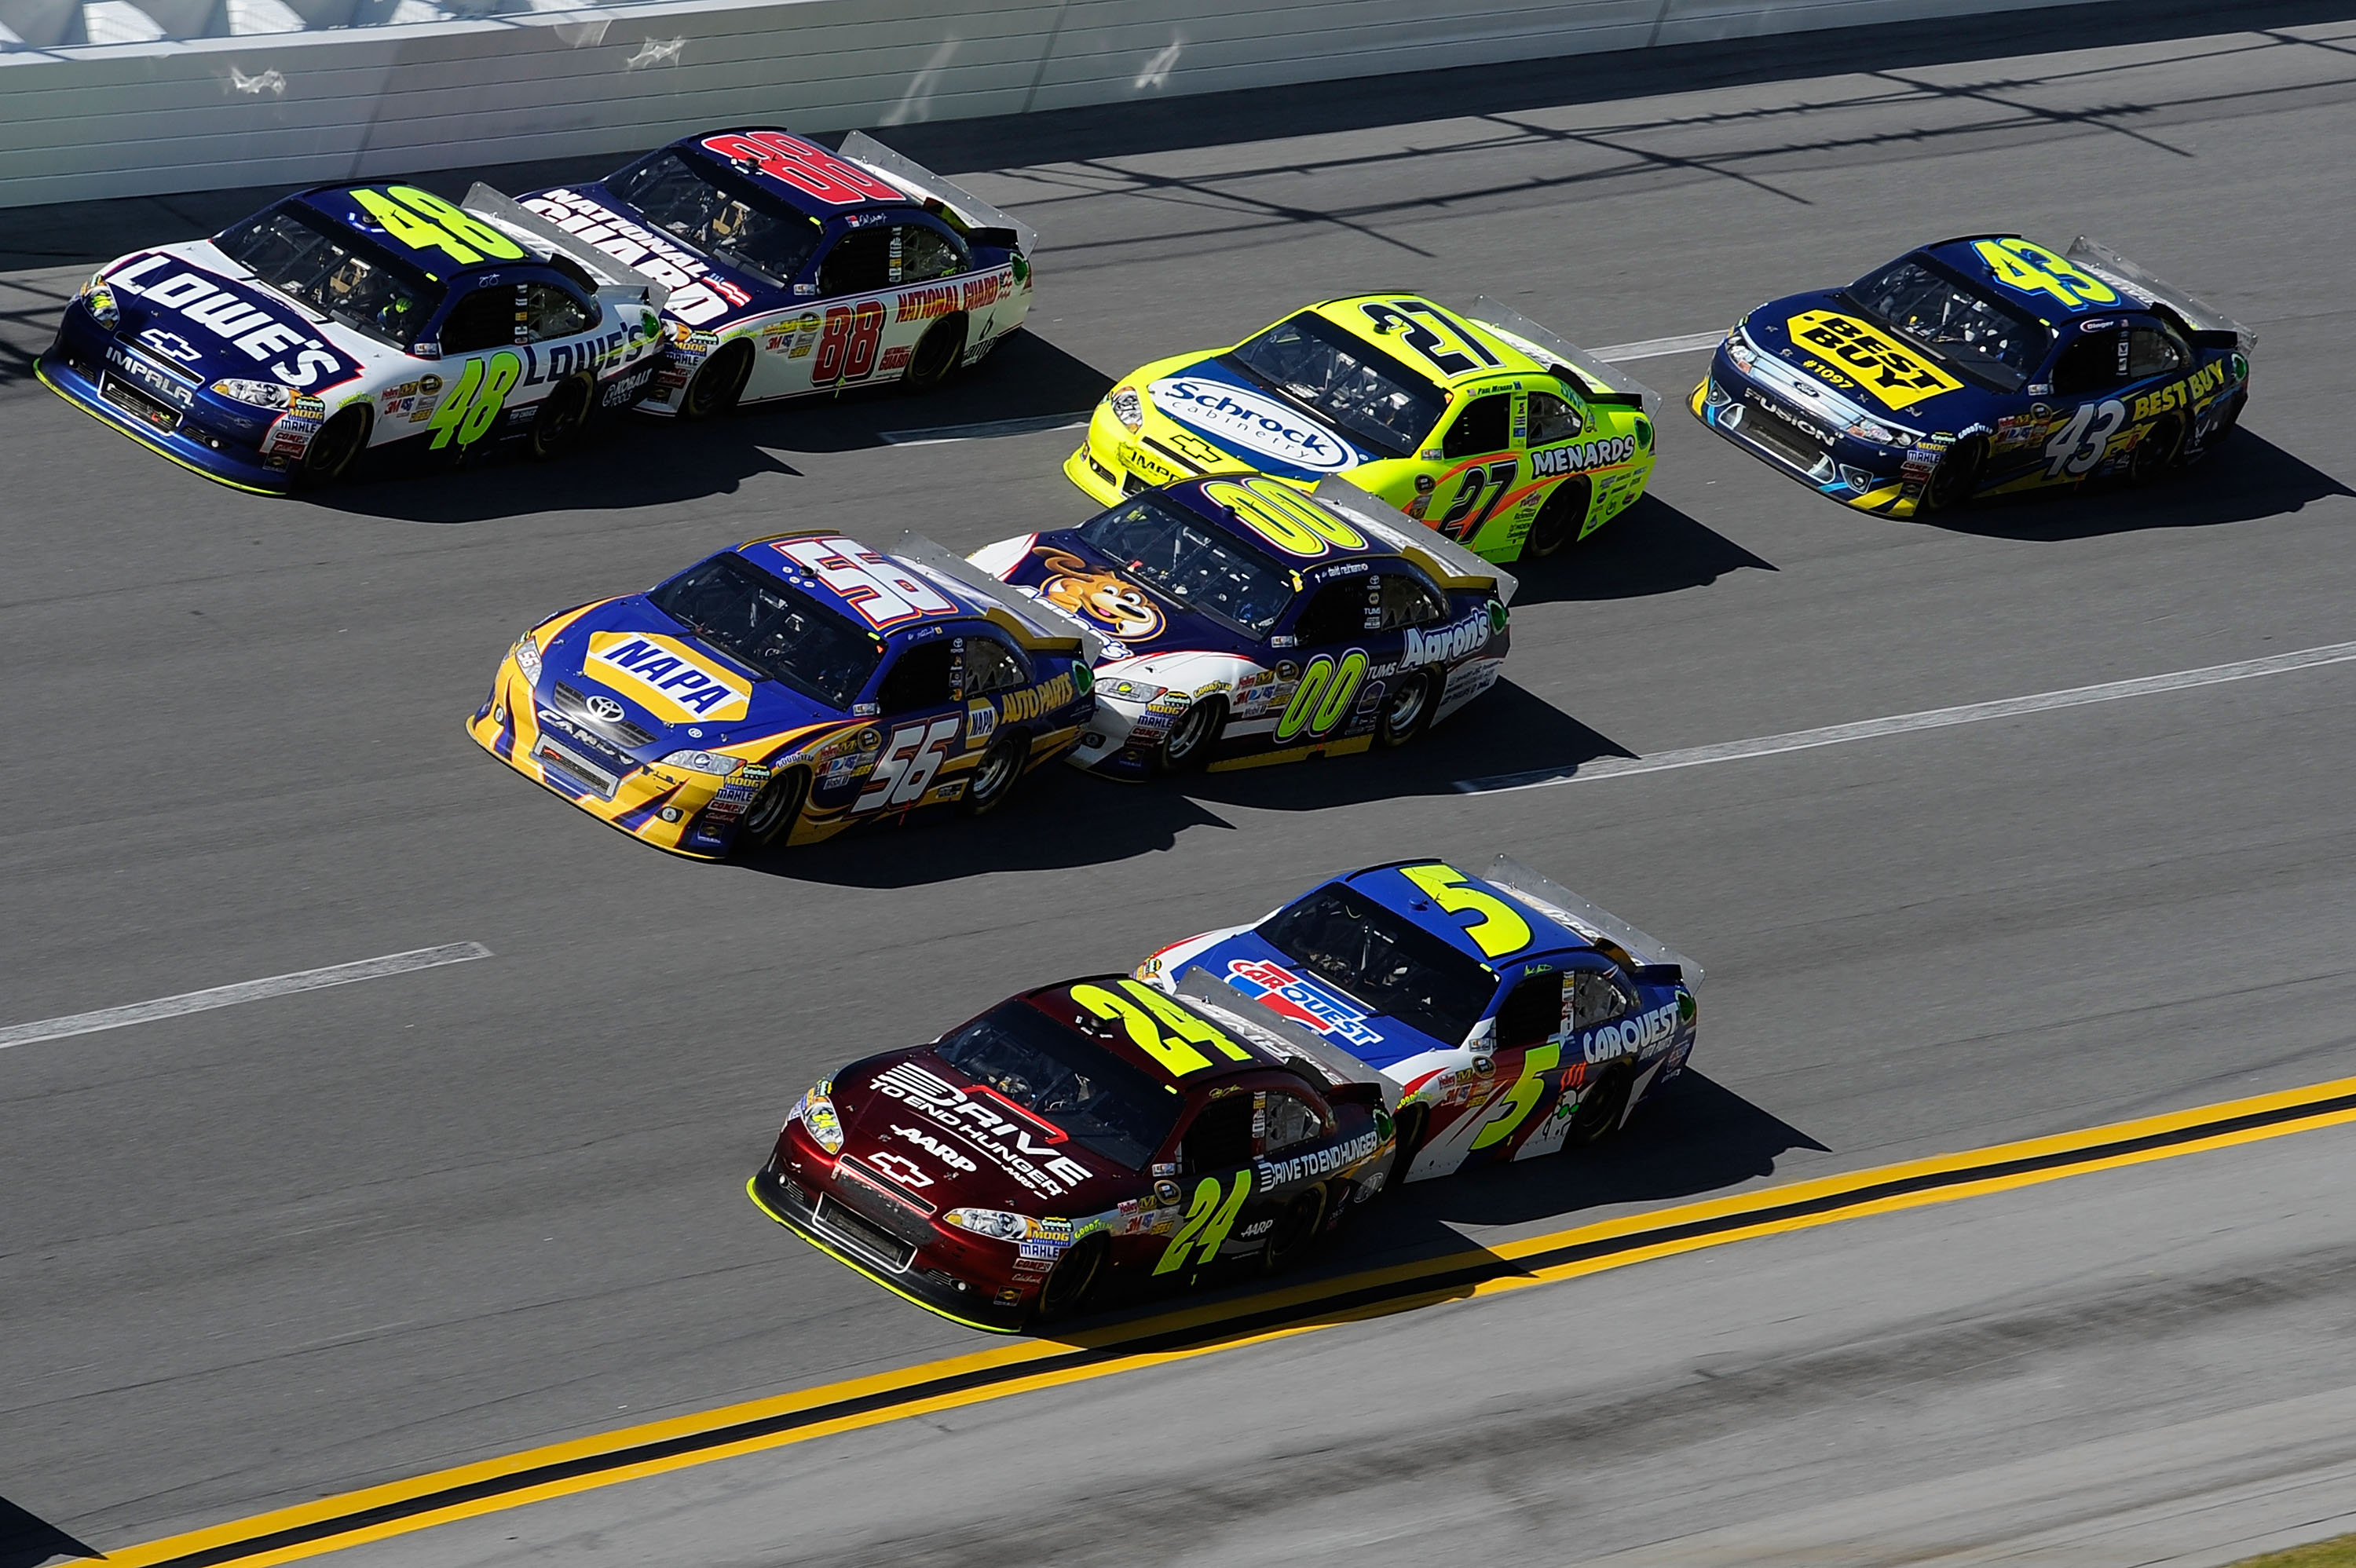 TALLADEGA, AL - APRIL 17:  Jimmie Johnson, driver of the #48 Lowe's Chevrolet, Martin Truex Jr., driver of the #56 NAPA Toyota, and Jeff Gordon, driver of the #24 Drive To End Hunger/AARP Chevrolet, lead the field during the NASCAR Sprint Cup Series Aaron